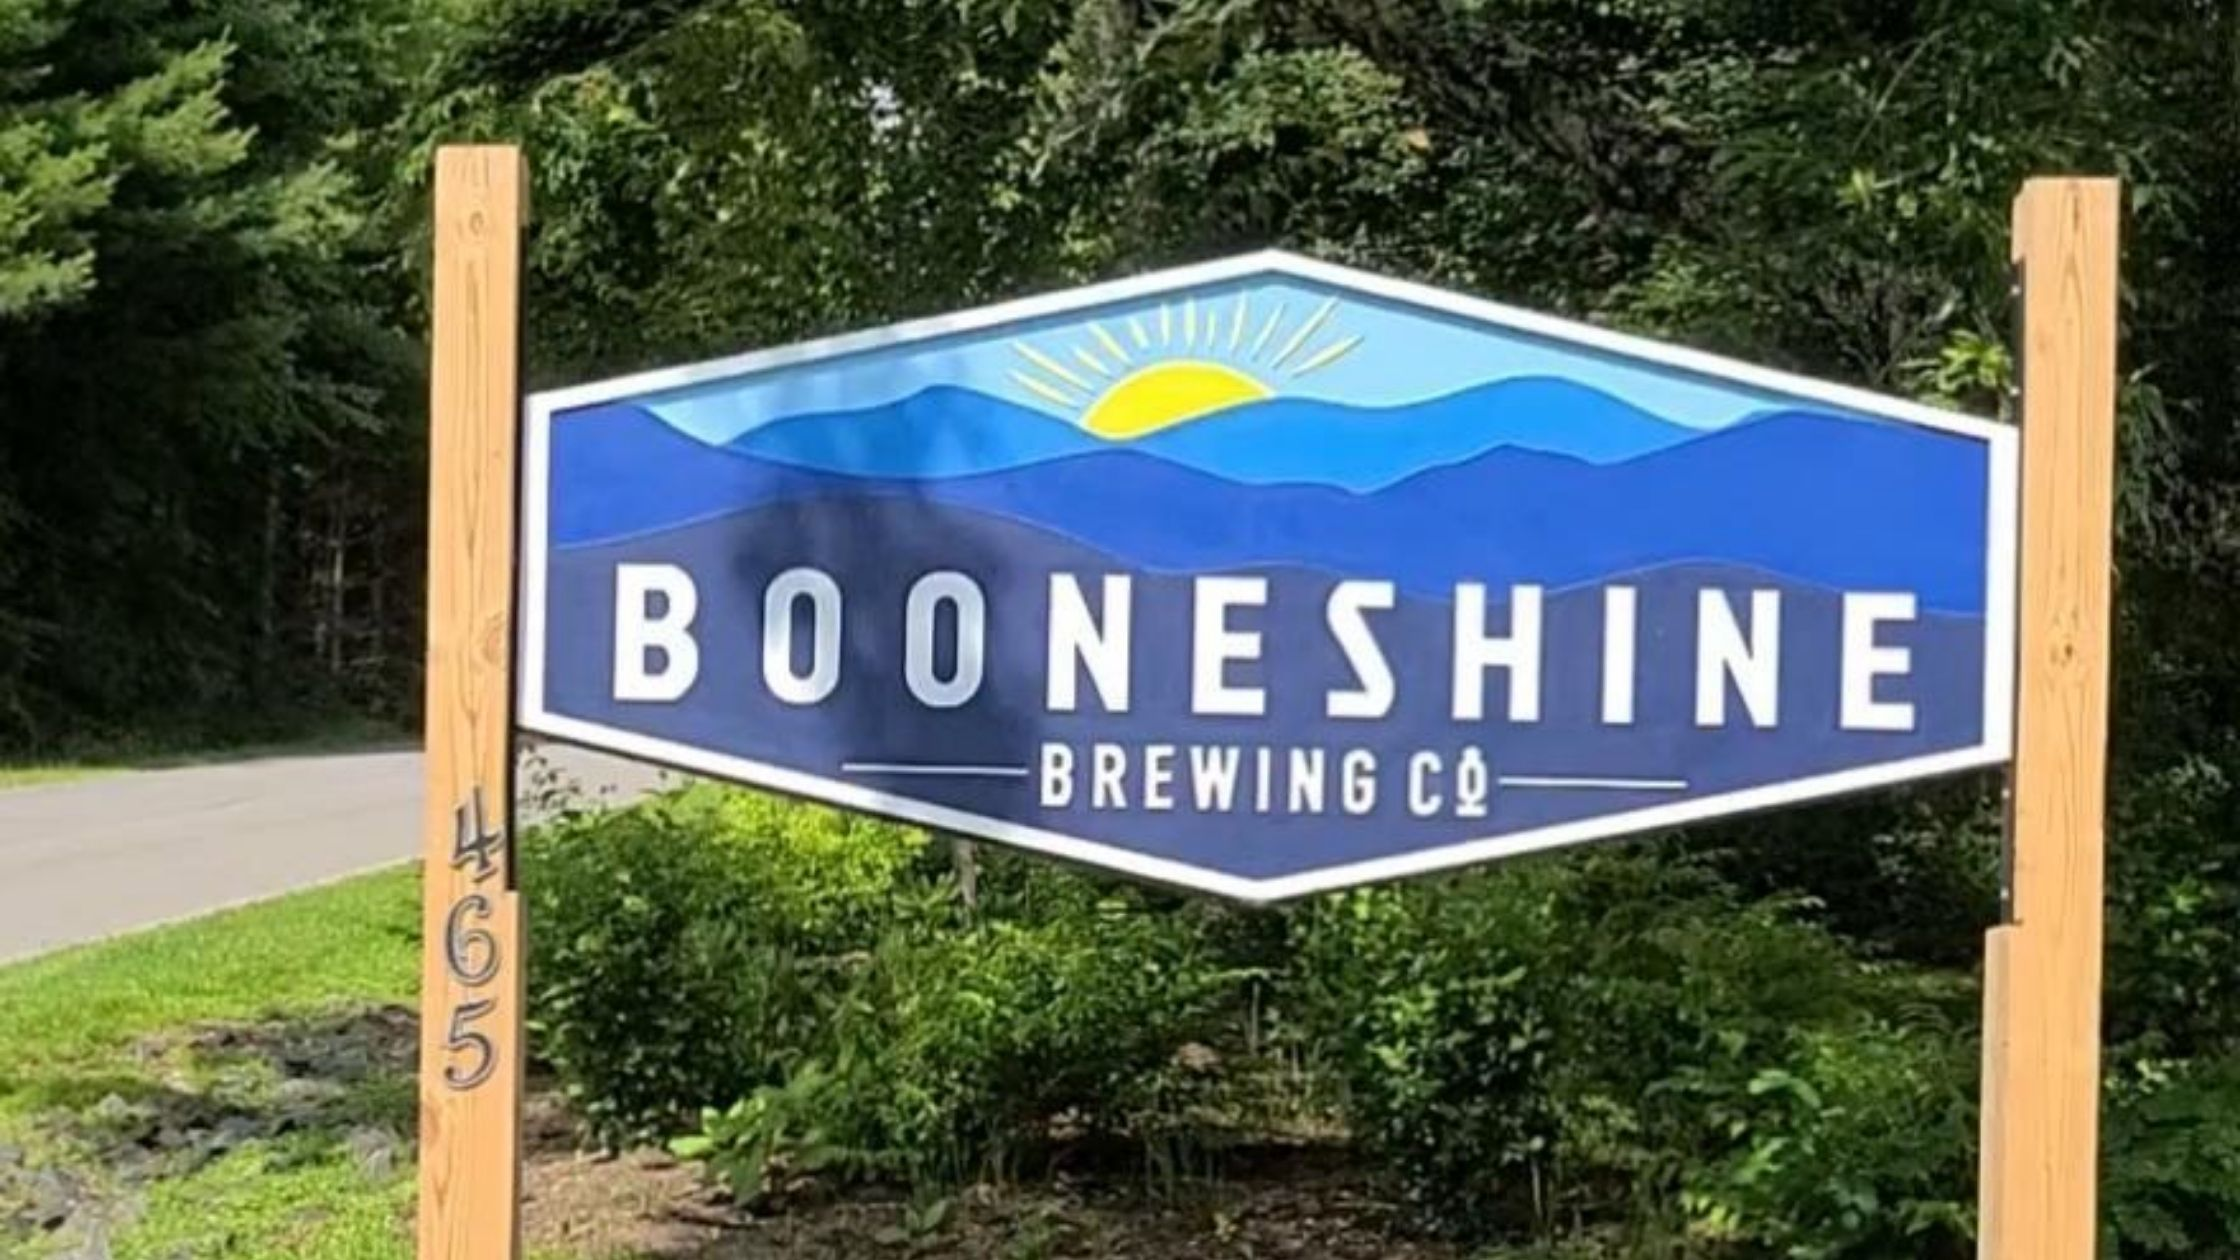 Signage outside of Booneshine Brewing Company in Boone, NC.